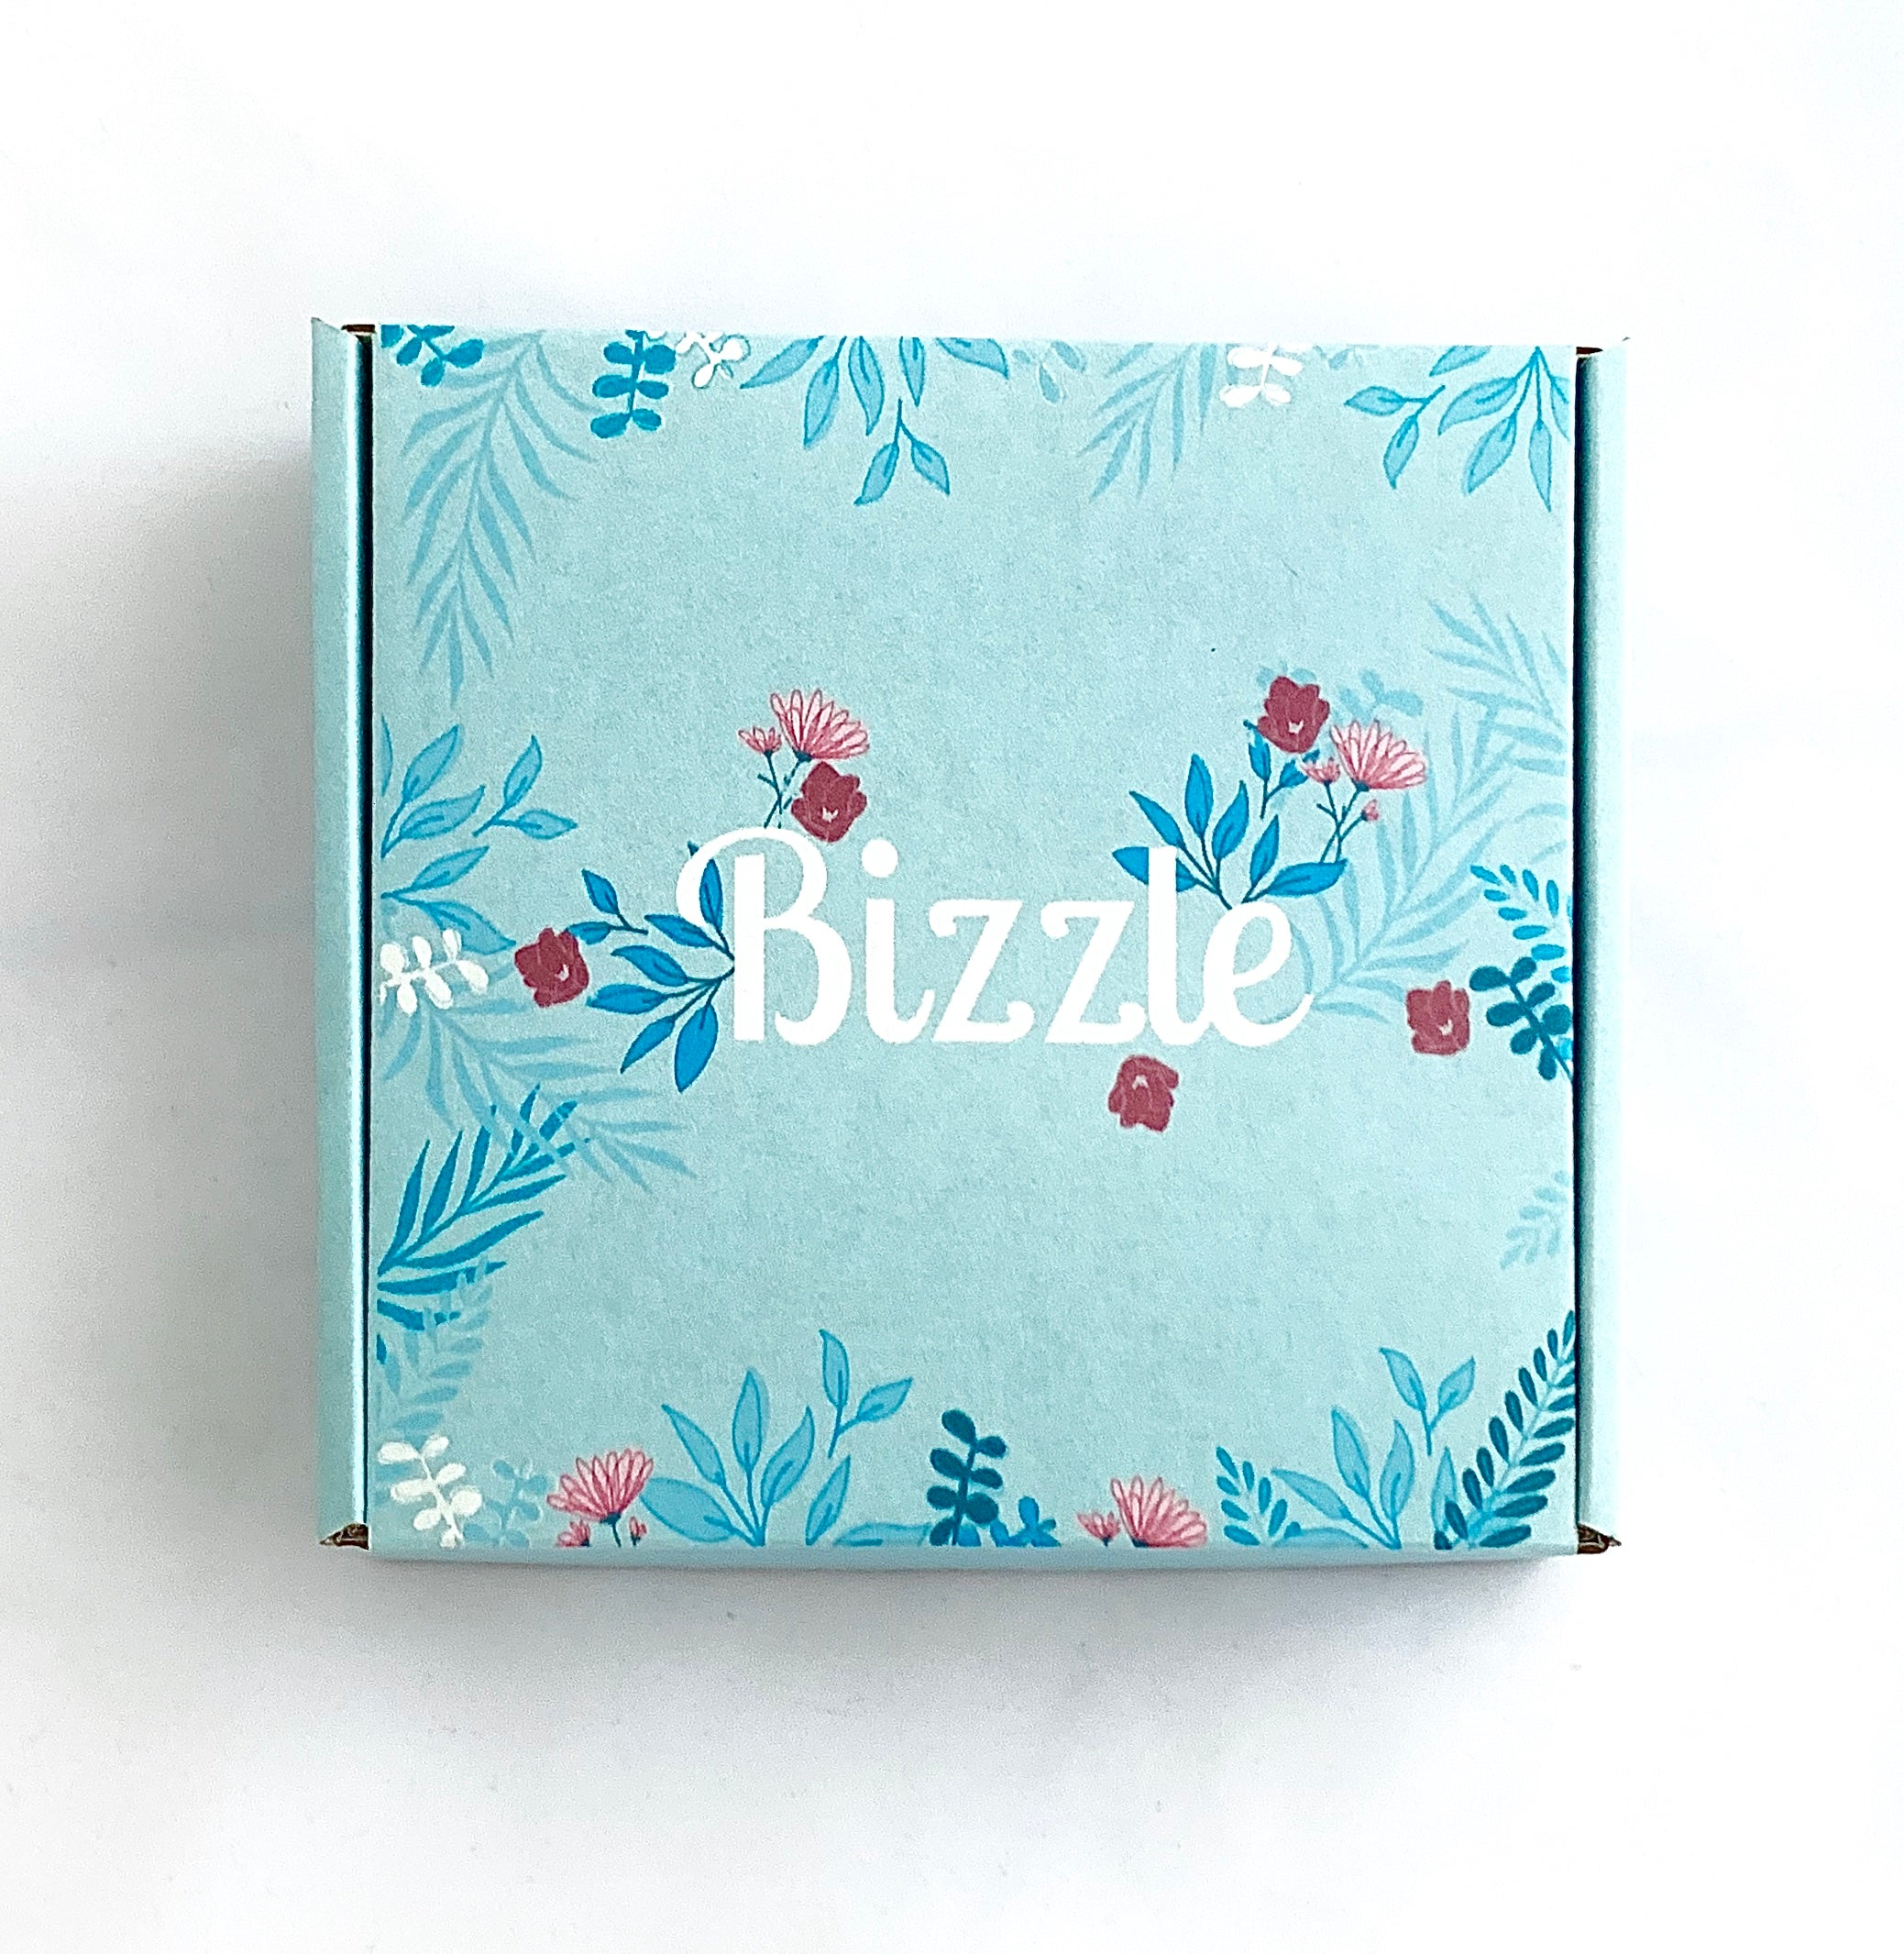 Bizzle Box: First Period Preparation Pack